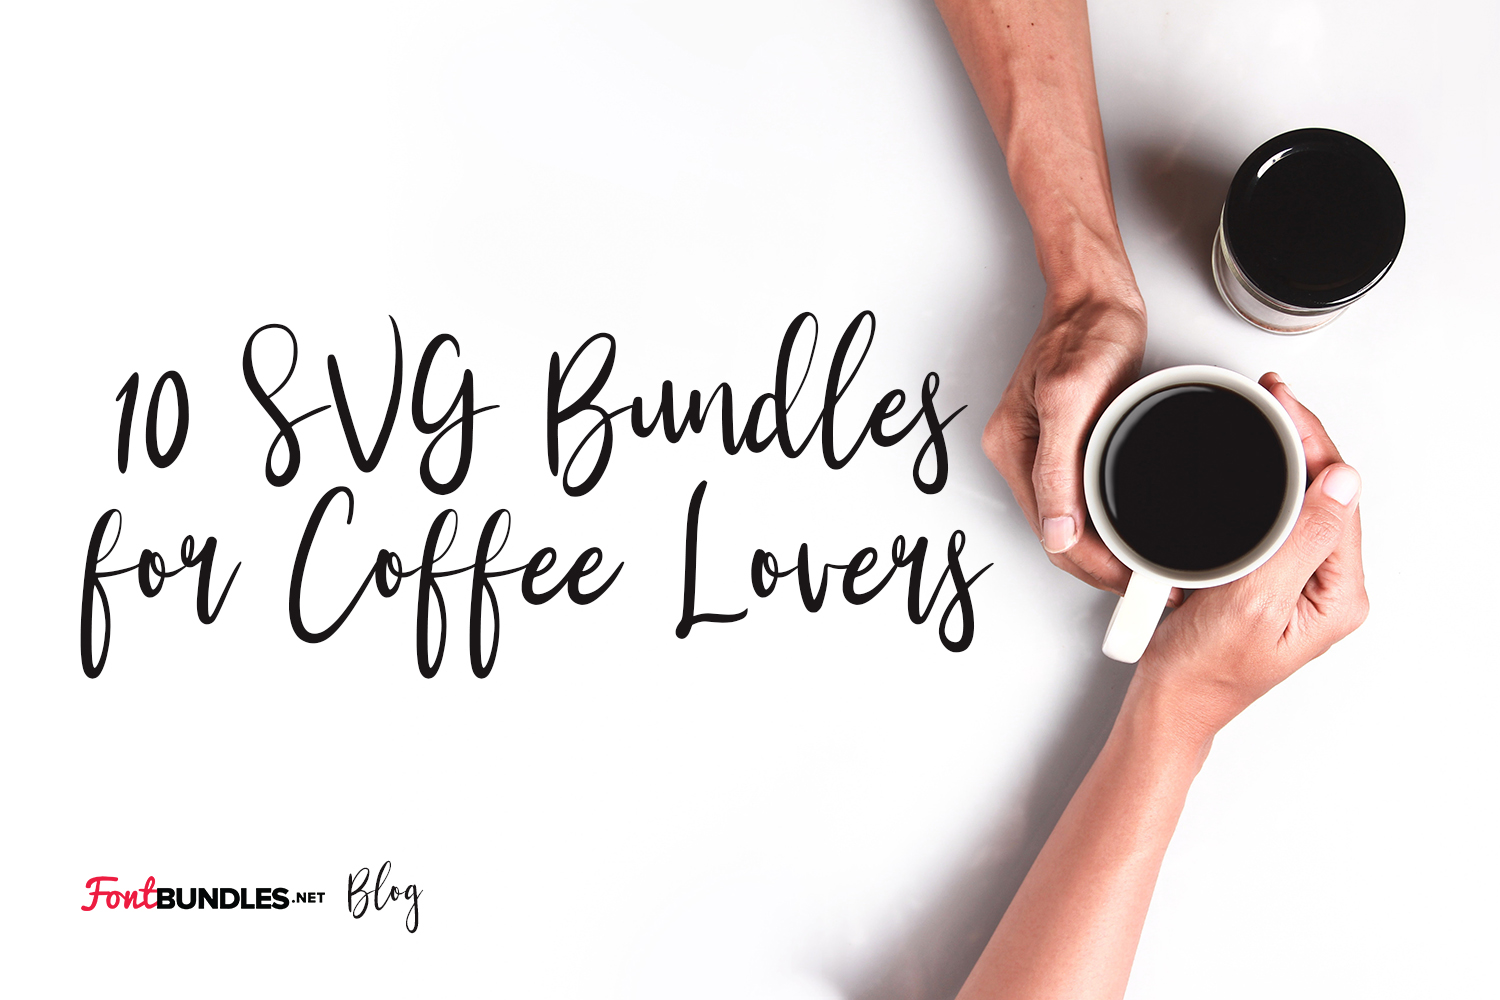 10 SVG Bundles for Coffee Lovers